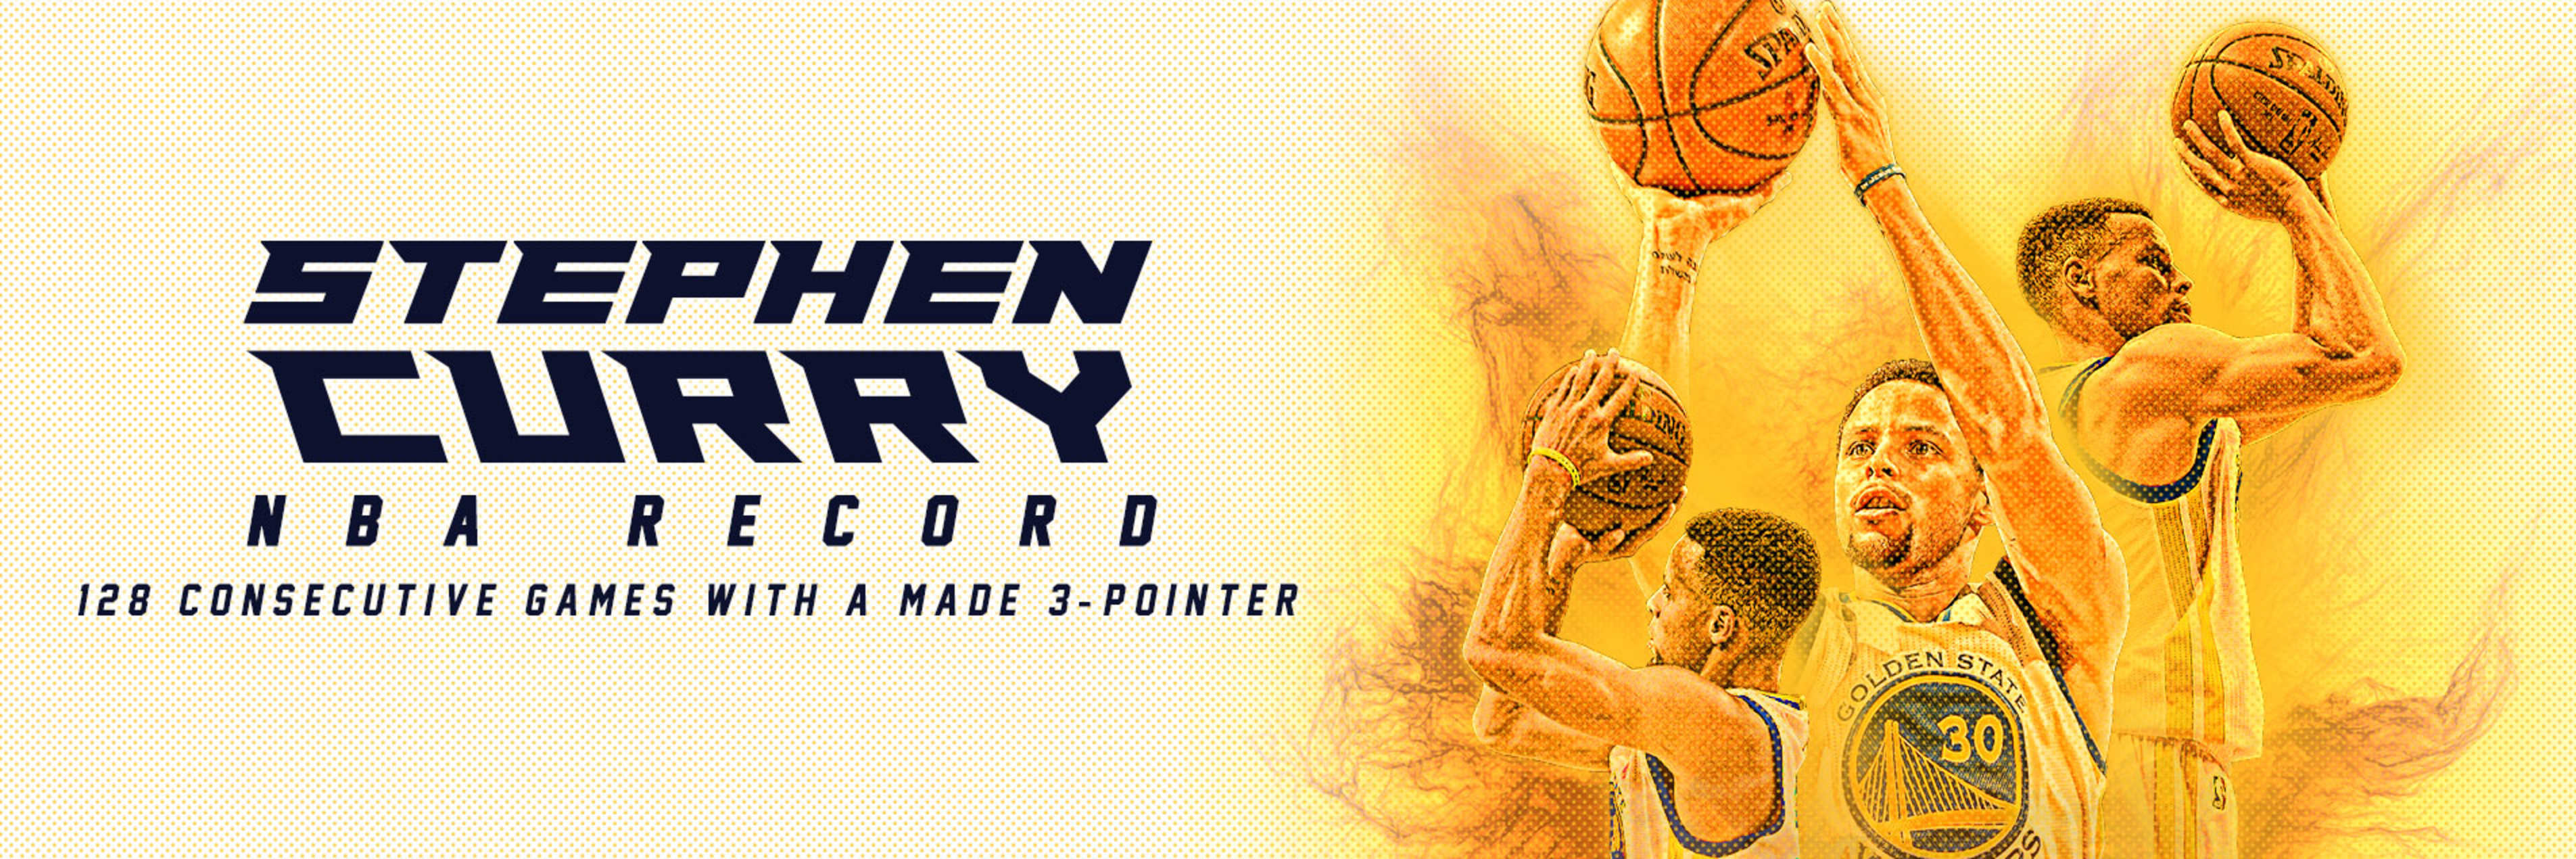 Stephen Curry Sets NBA Record